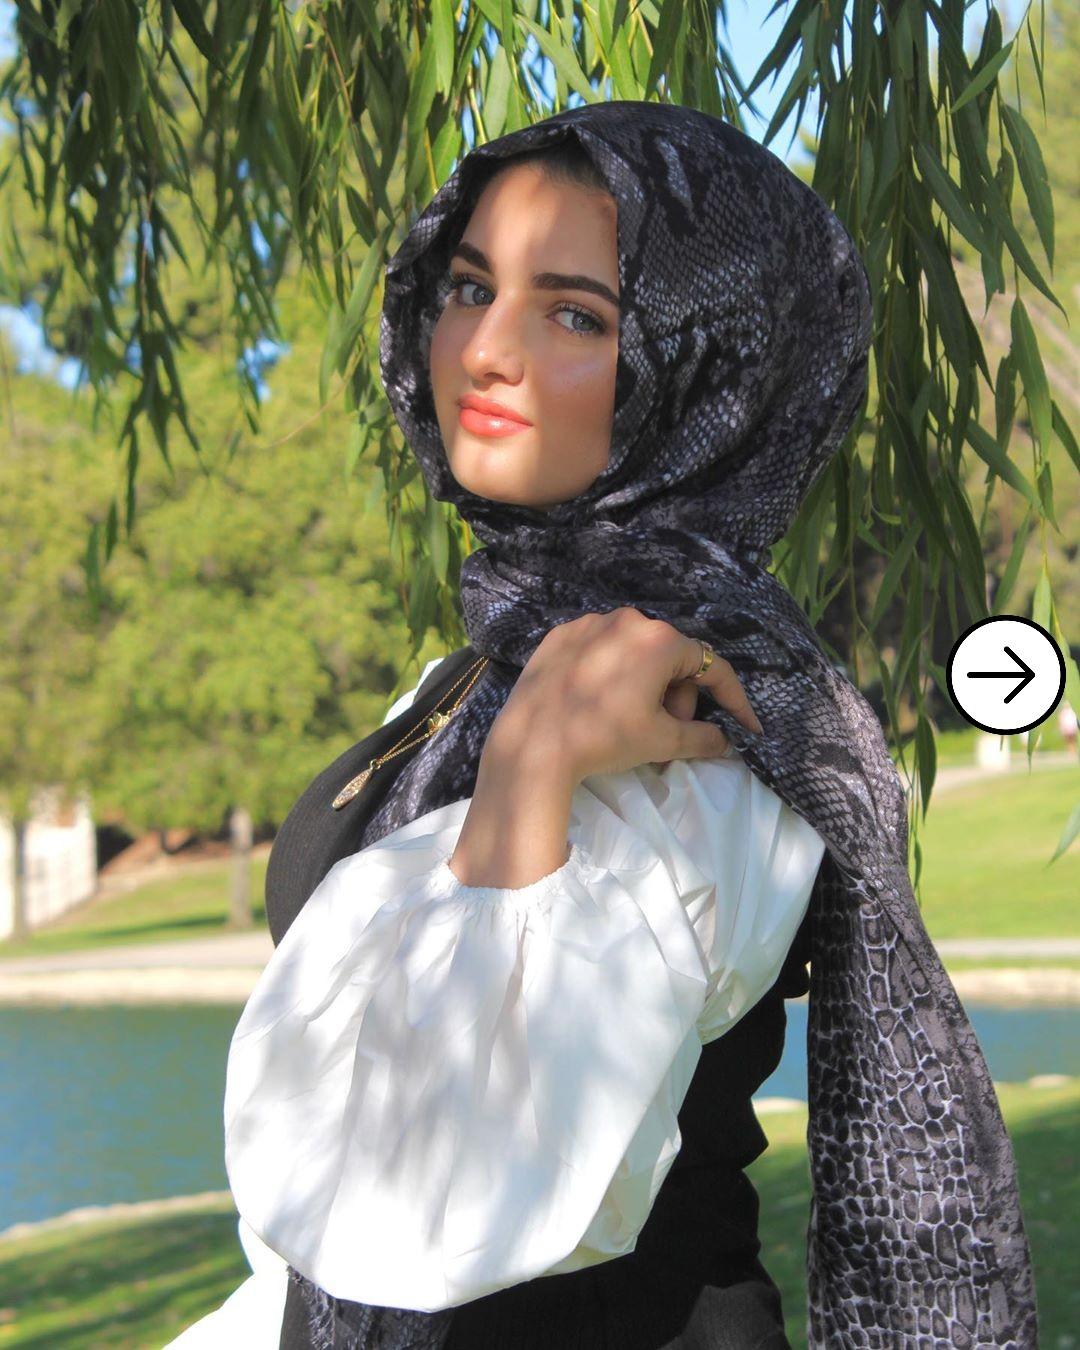 Noura Abdi: Hijabi instagram model that's breaking the internet 2